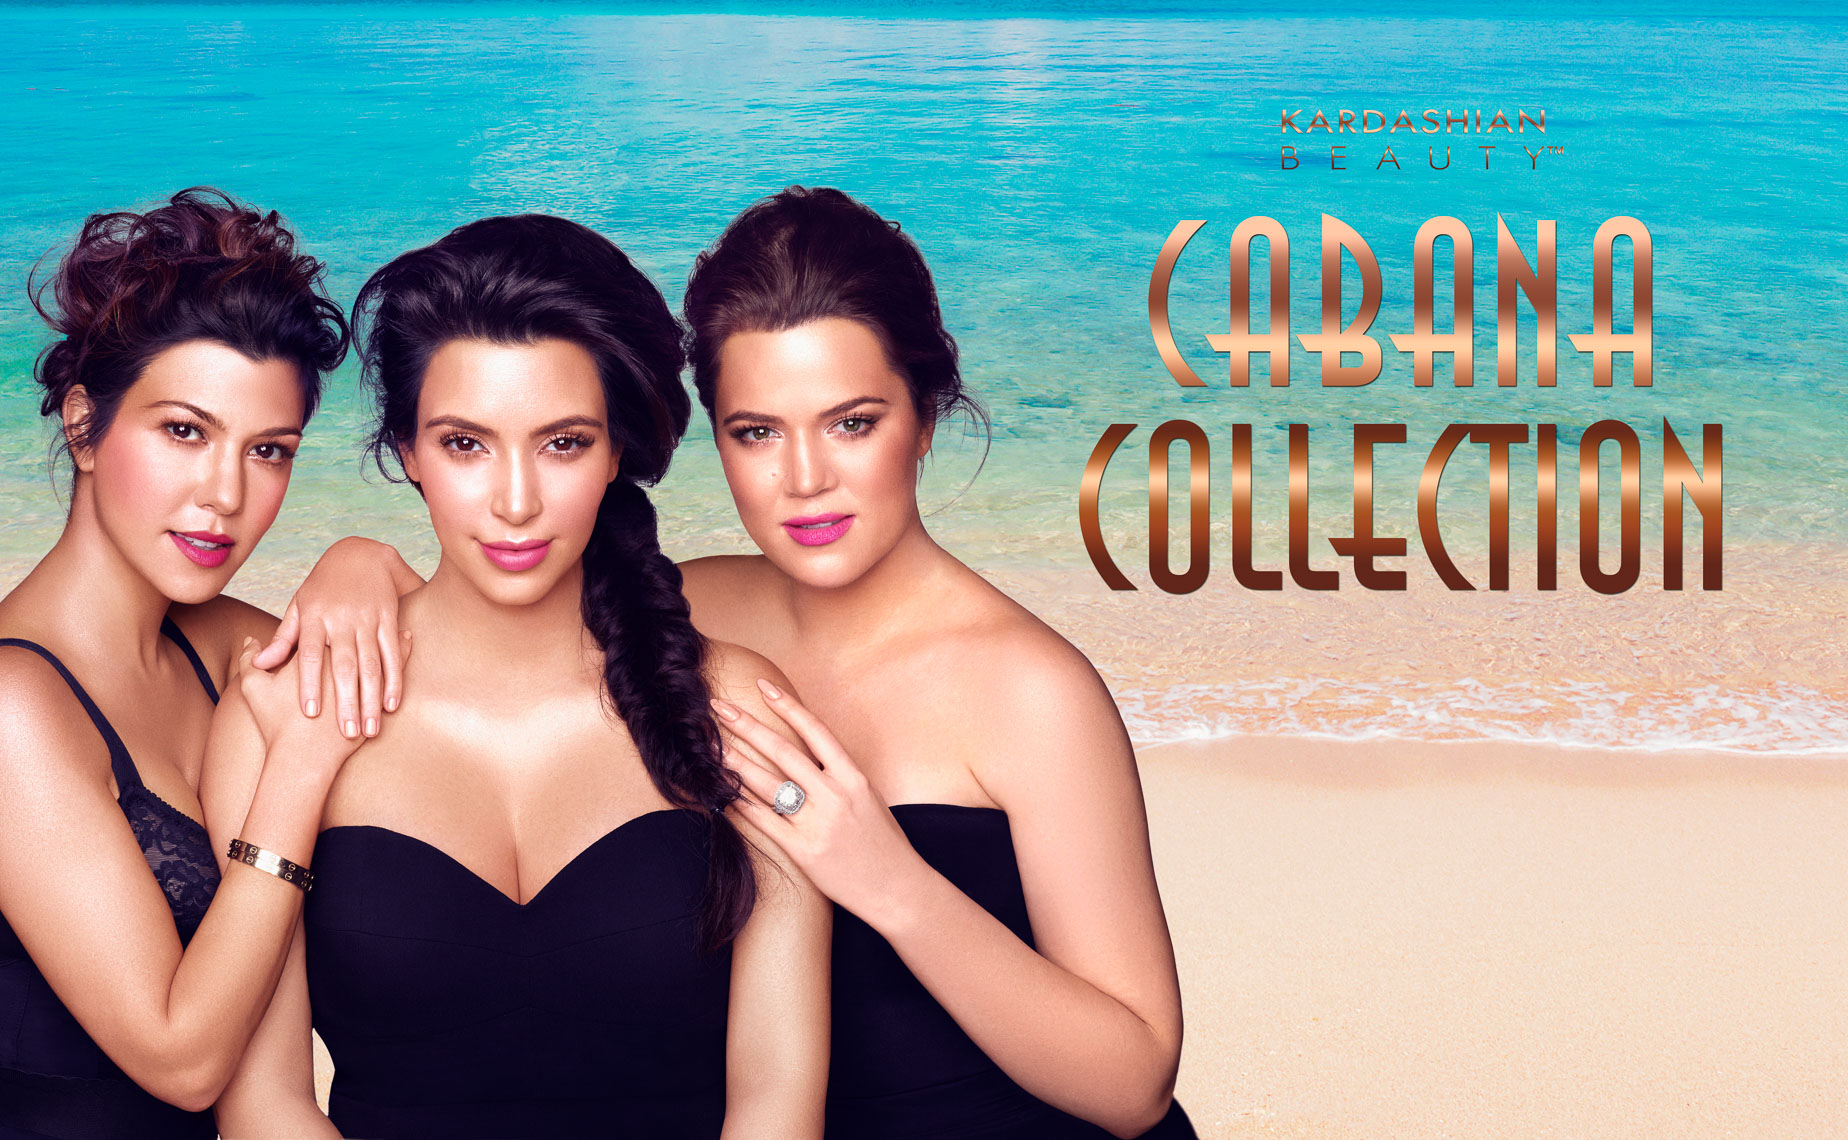 Kardashian_-cabana_header_photo